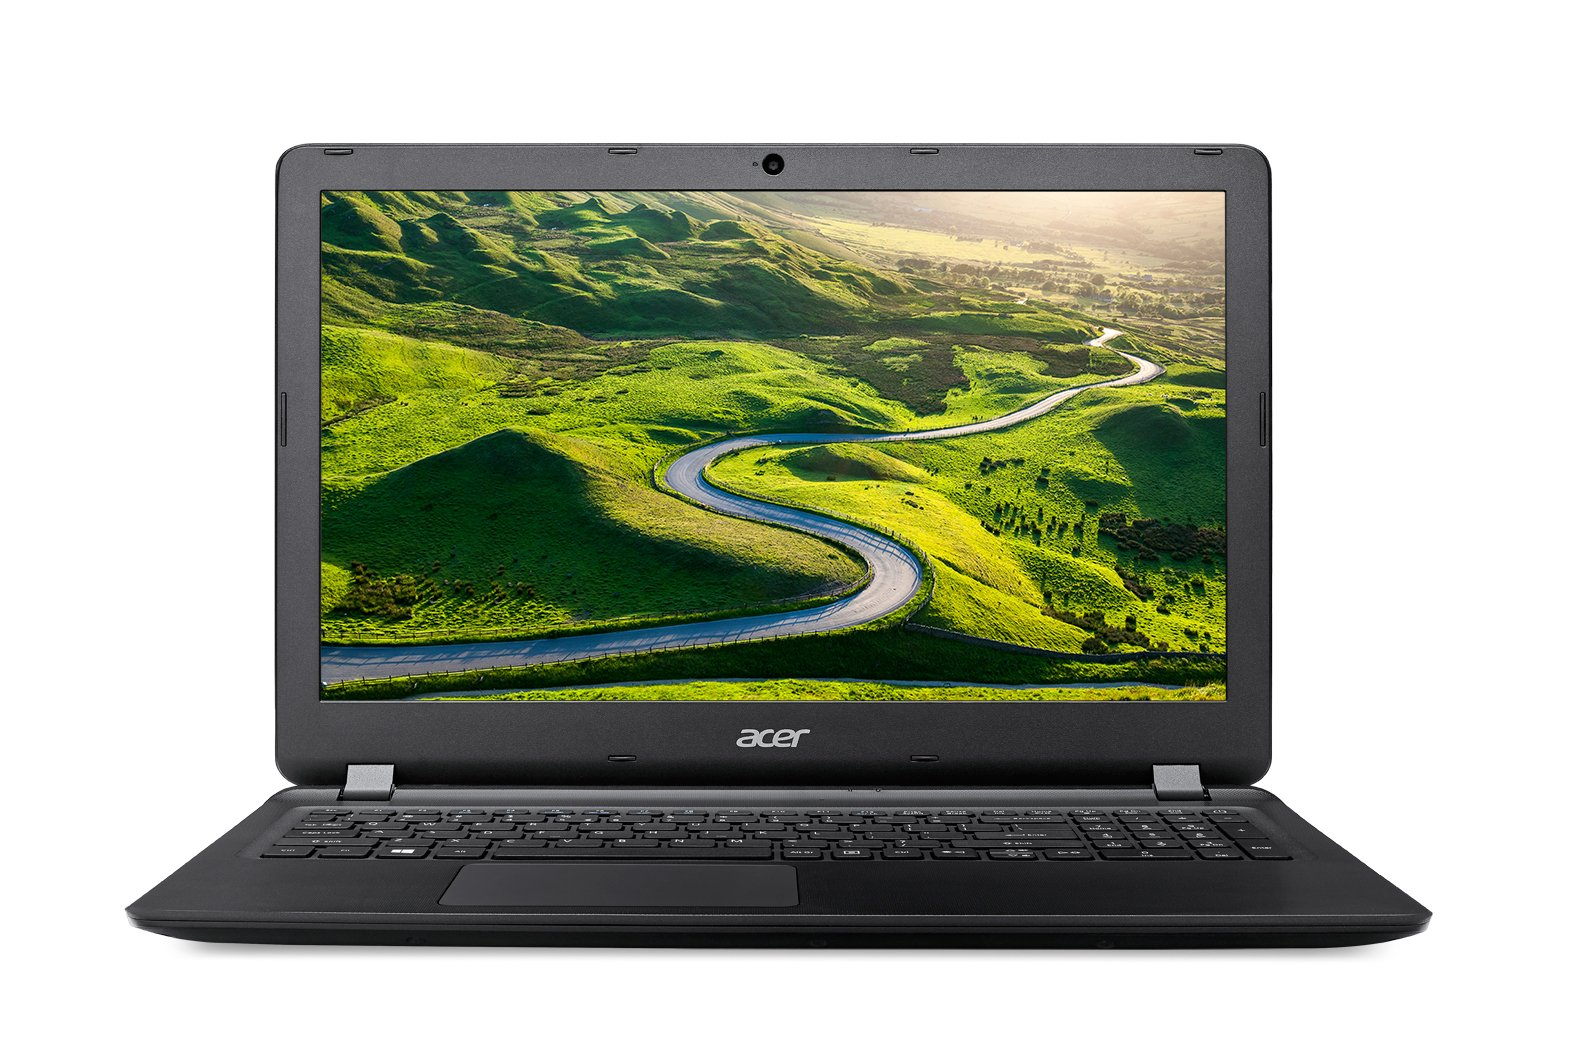 "Acer Aspire ES 15 (ES1-533-C95R) Celeron N3350/4GB+N/A/128GB SSD+N/DVDRW/HD Graphics/15.6""FHD LED matný/Boot-up Linux/Bl"